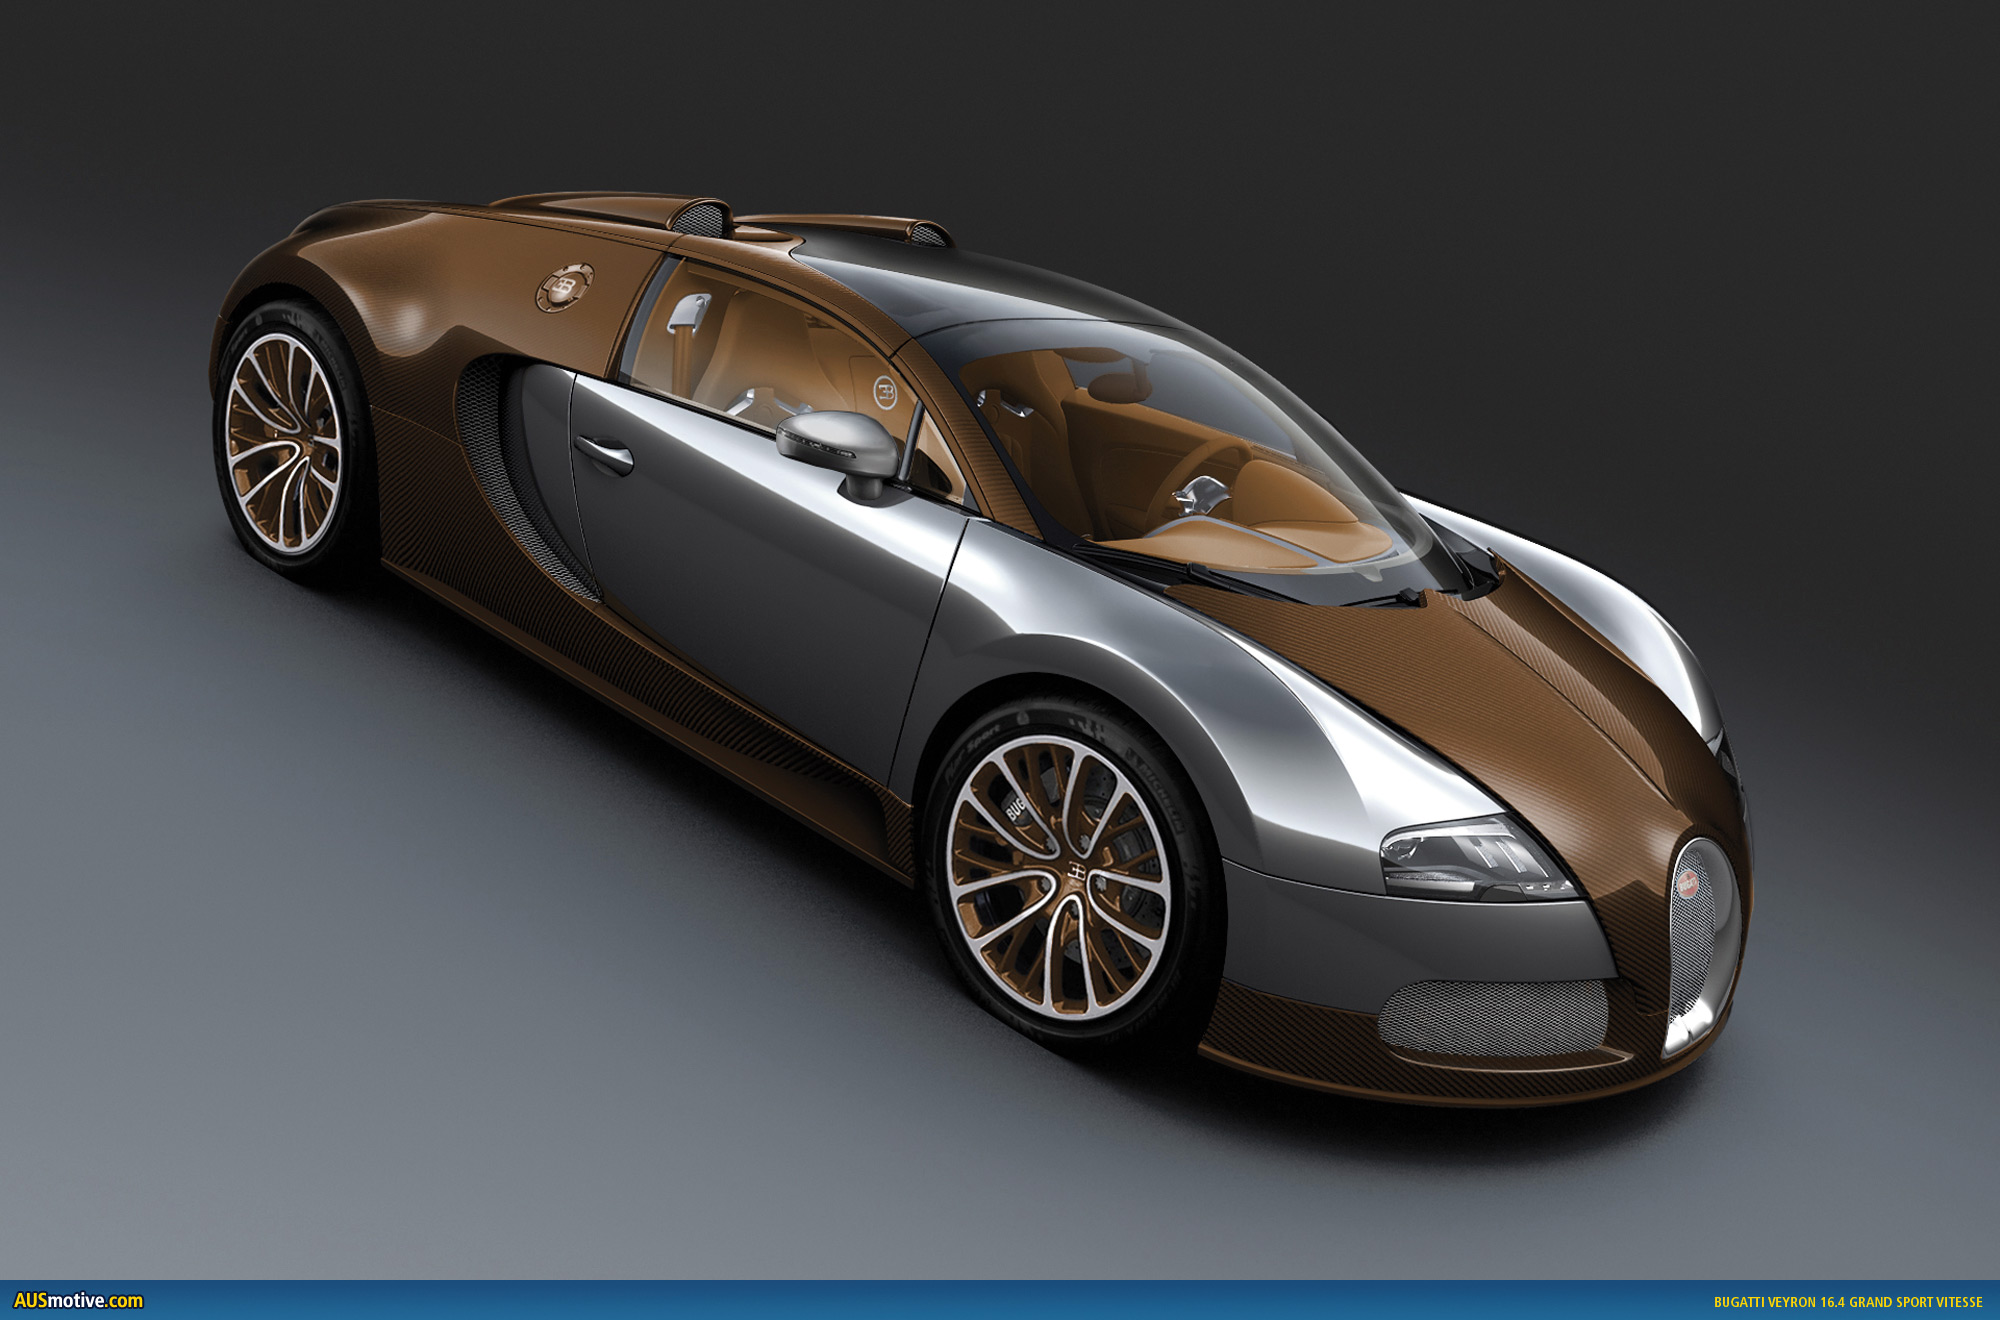 bugatti veyron 16 4 grand sport vitesse. Black Bedroom Furniture Sets. Home Design Ideas